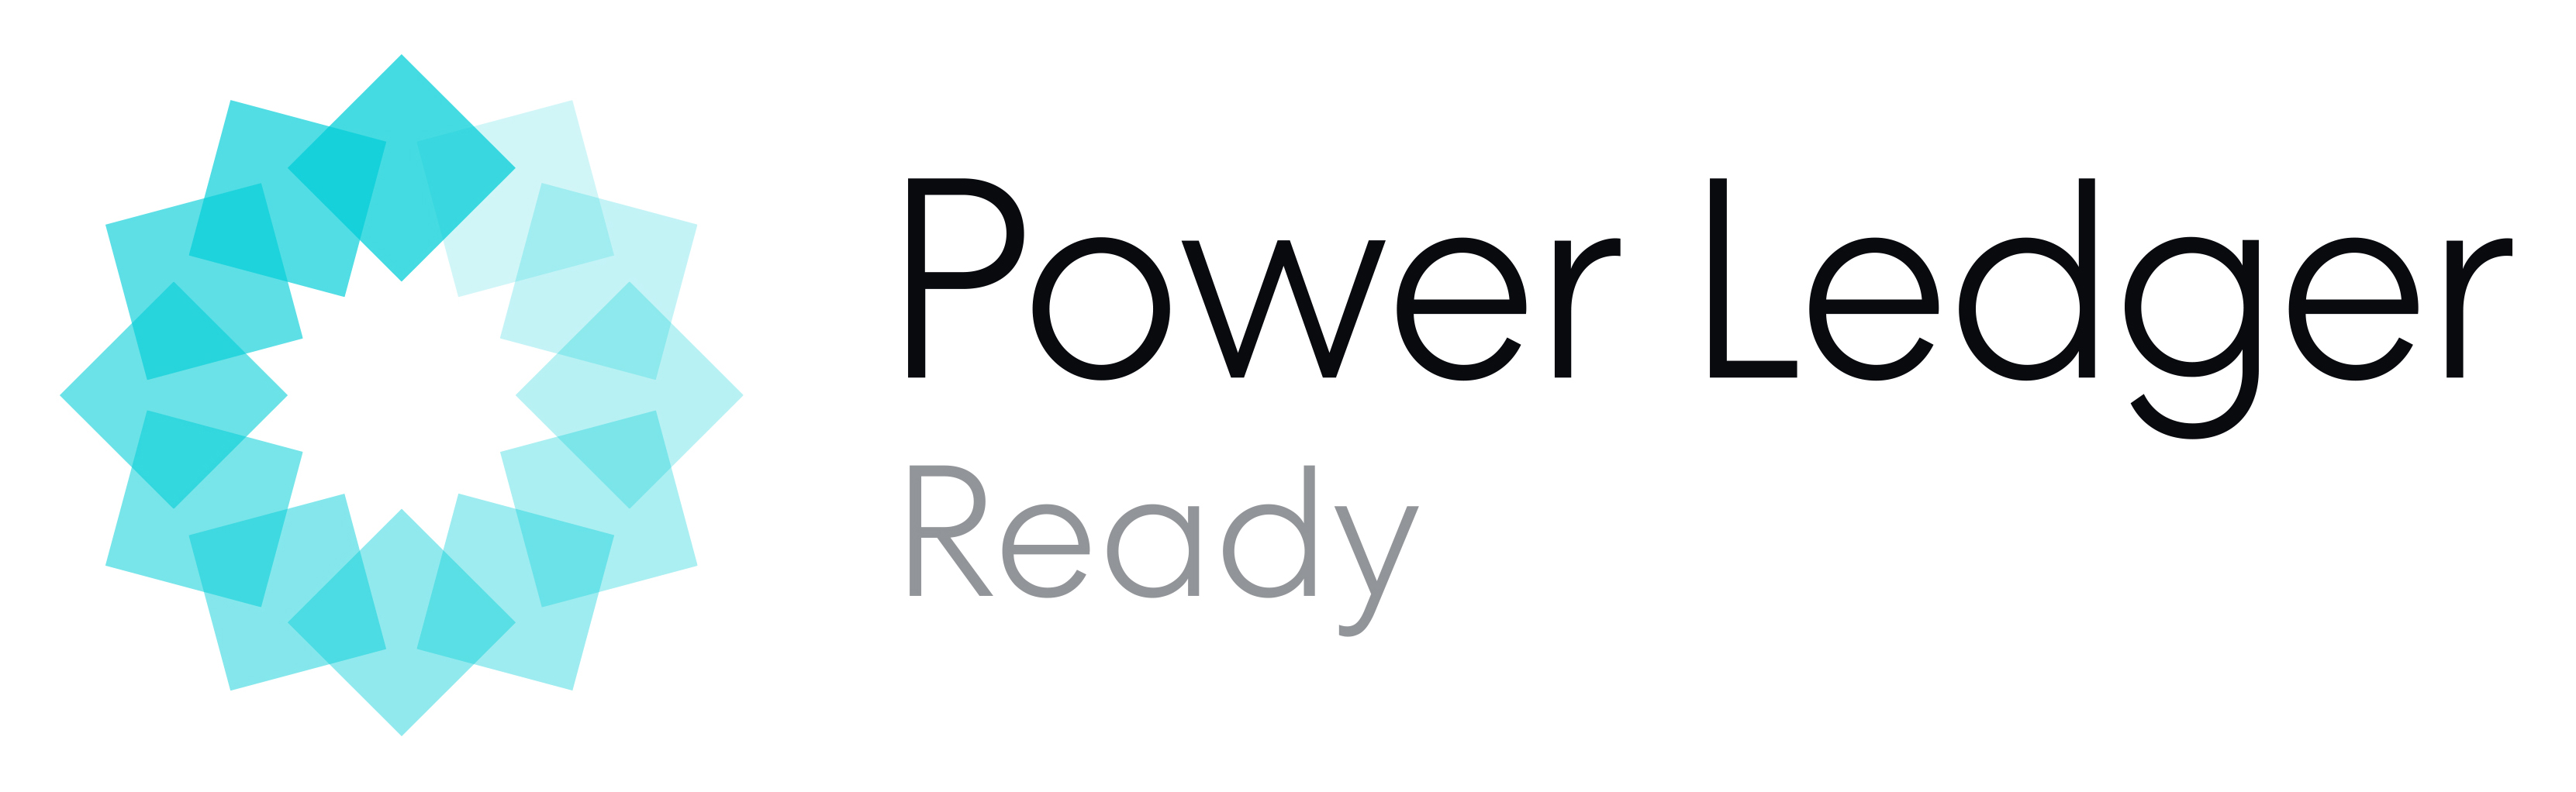 http://btenergy.com.au/wordpress/wp-content/uploads/2019/08/logo-power-ledger-ready-whiteoutline.jpg